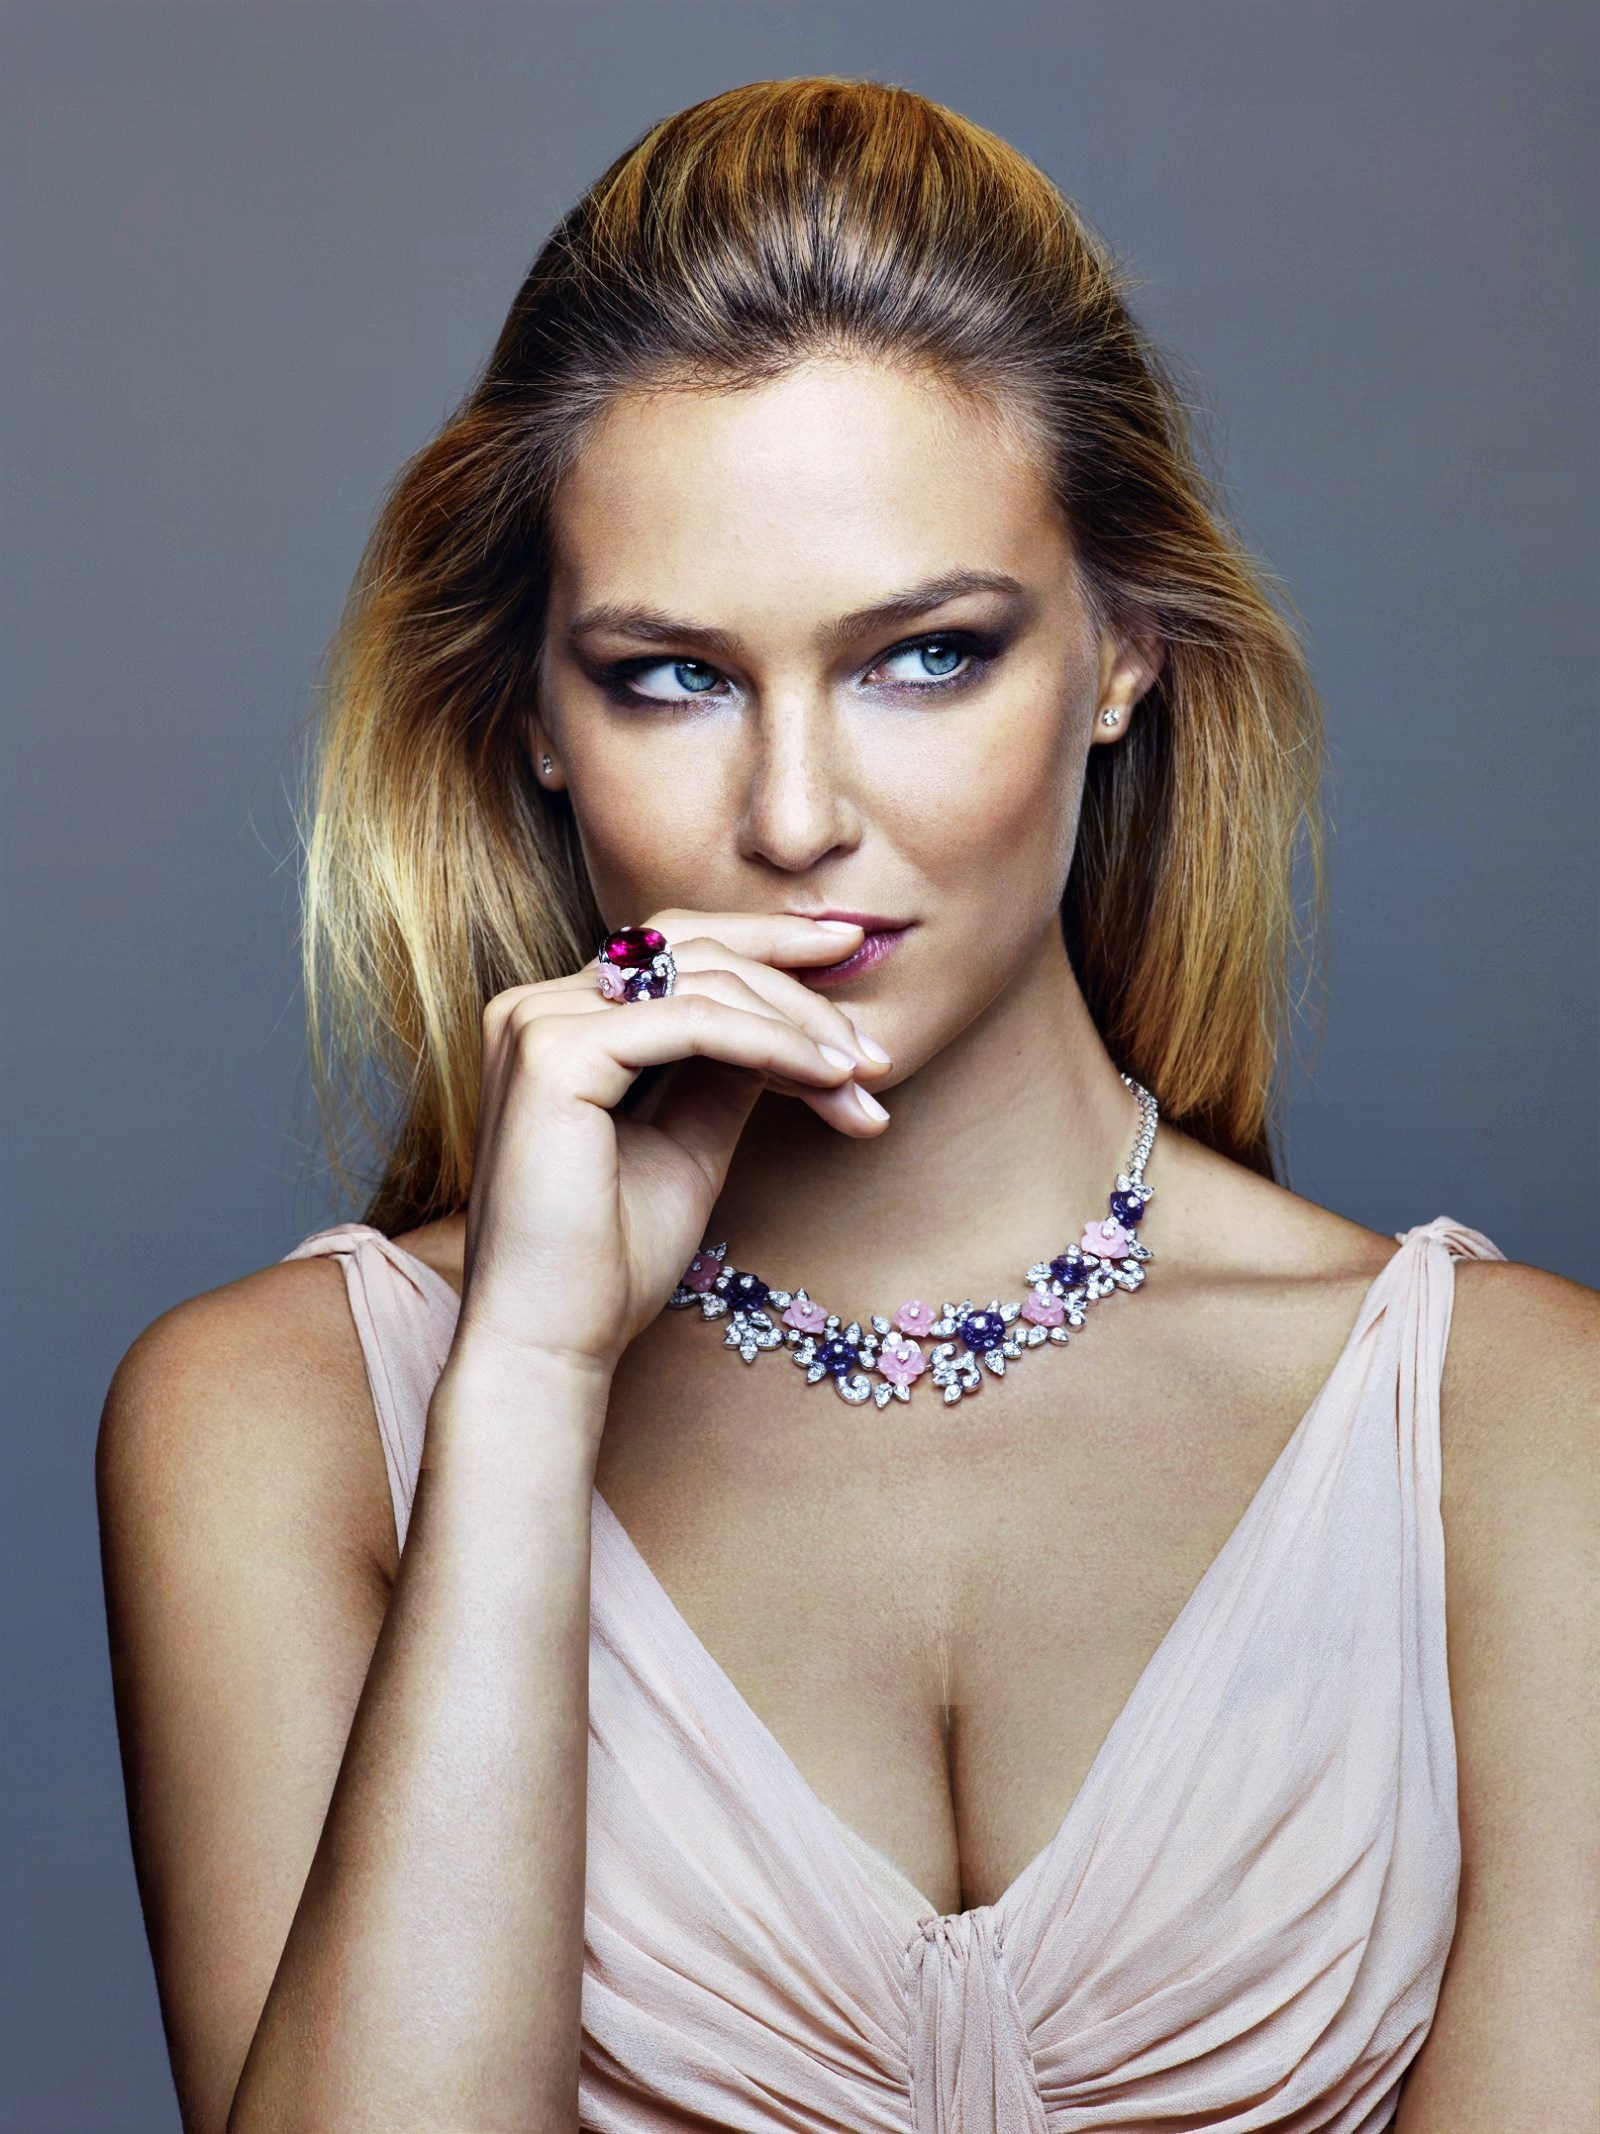 Bar Refaeli | Known pe... Bar Refaeli